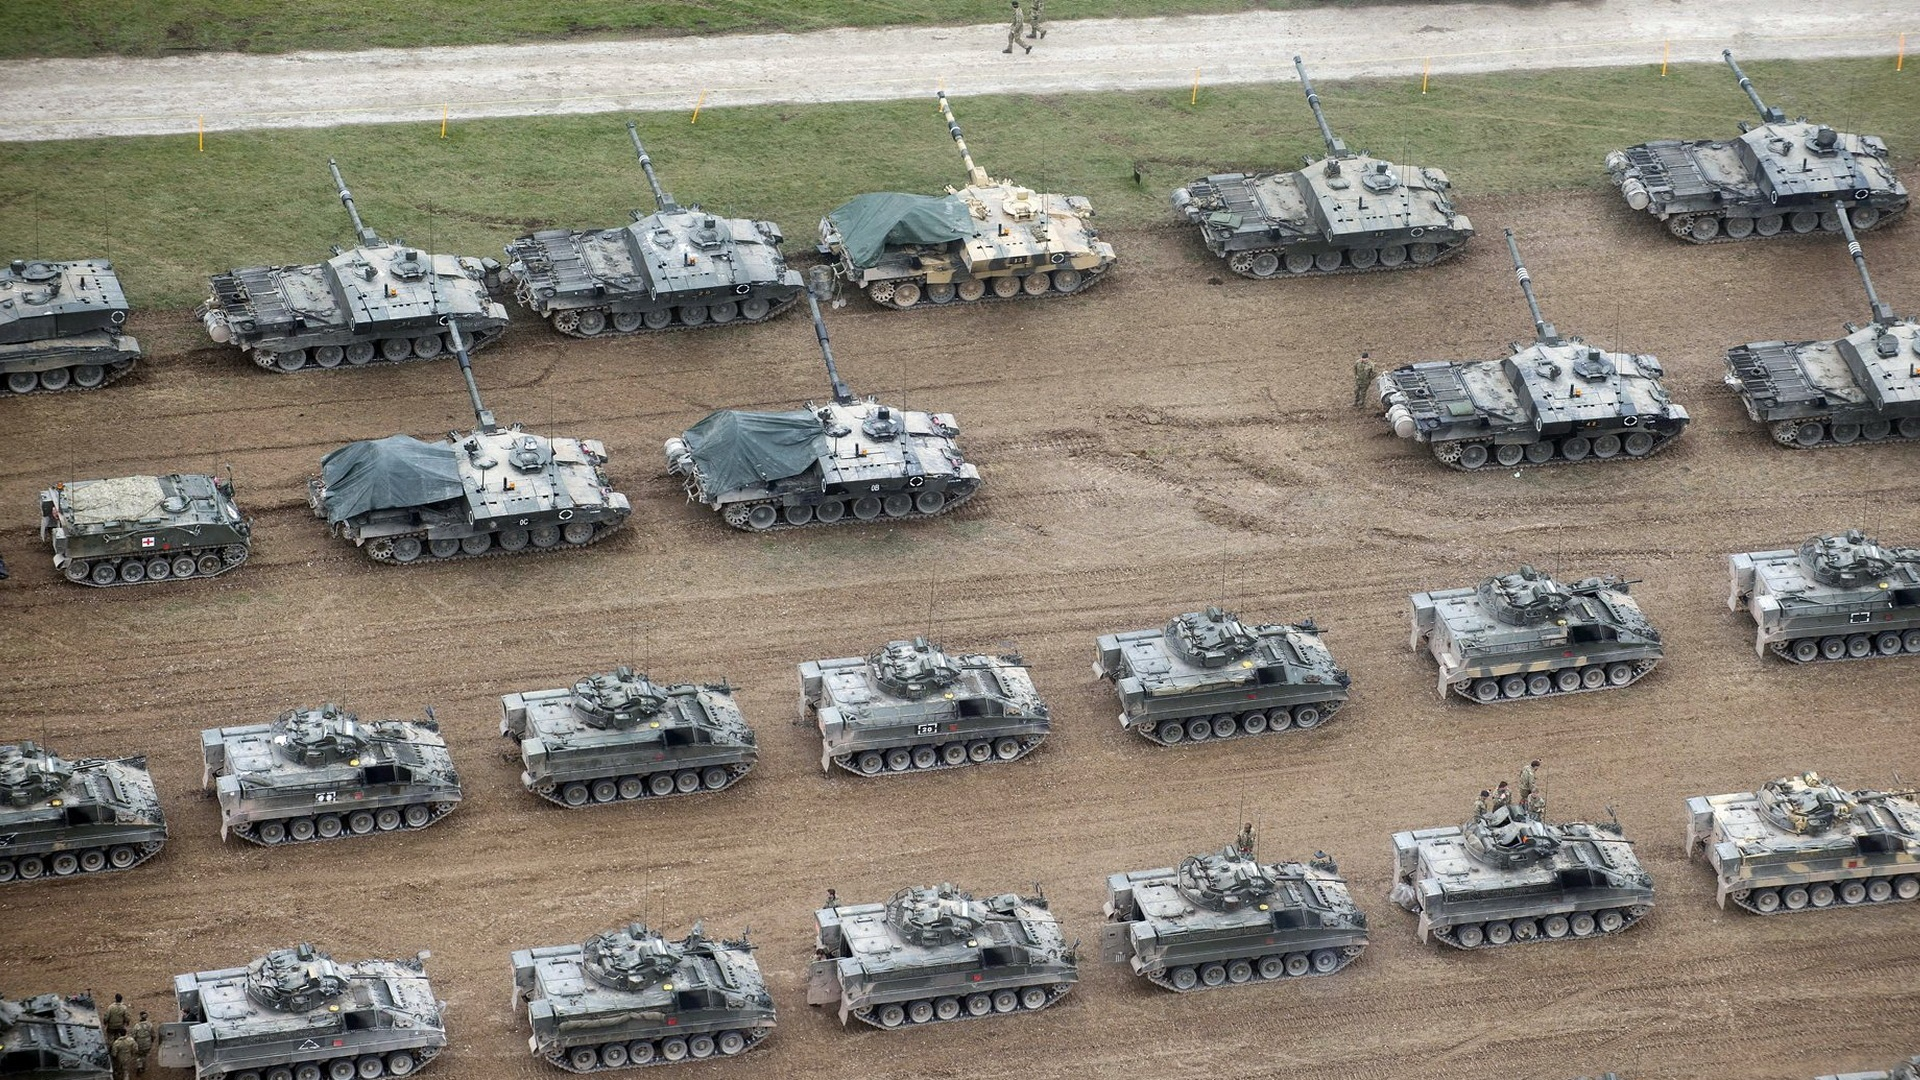 wallpaper many tanks british army 1920x1080 full hd 2k picture image